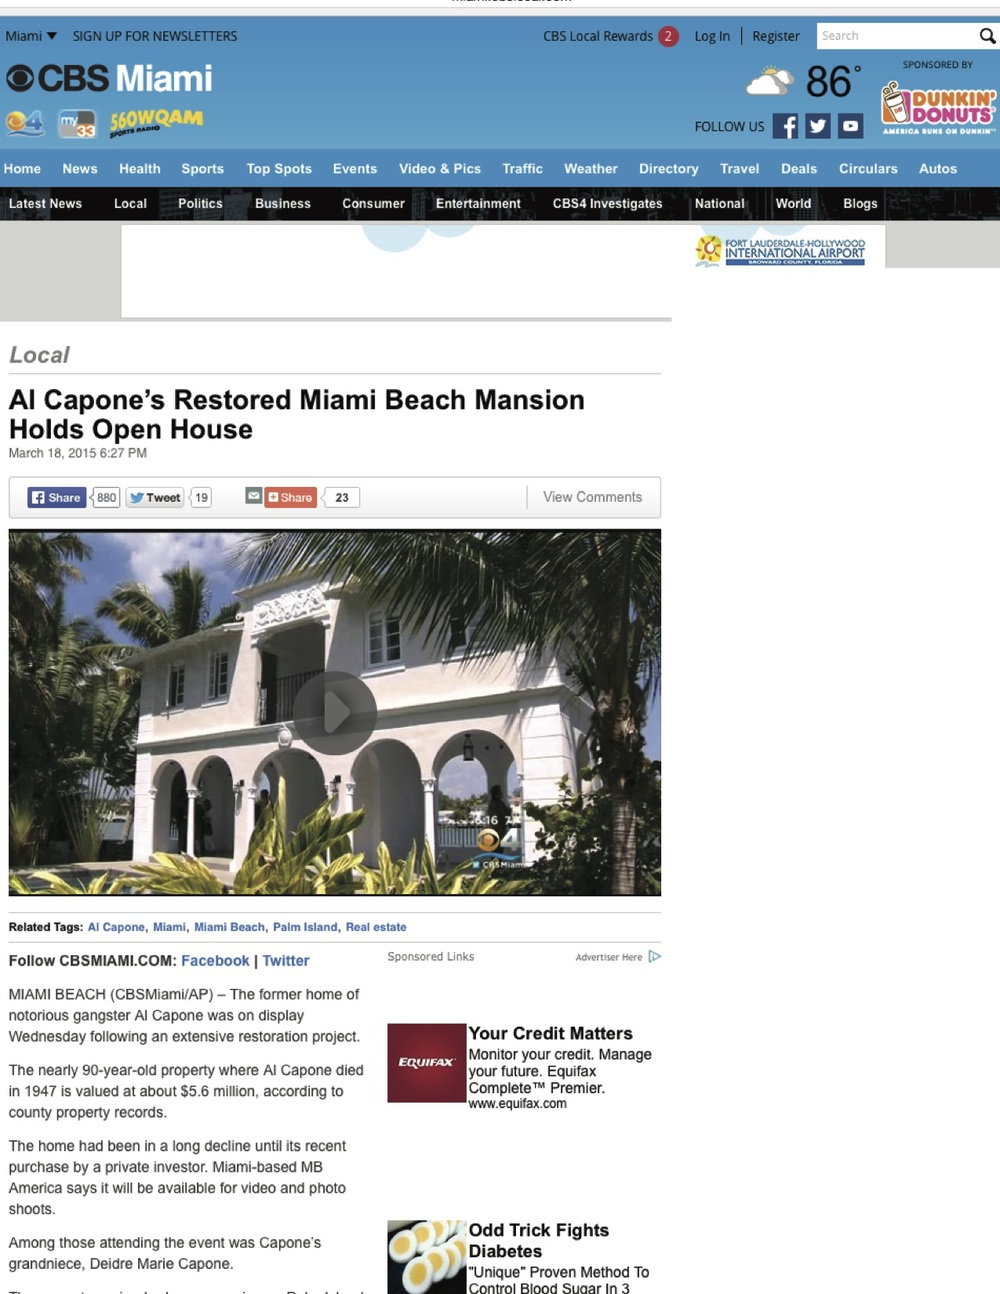 "<p><strong>CBS Miami</strong><a href=""http://miami.cbslocal.com/2015/03/18/al-capones-restored-miami-beach-mansion-holding-open-house/"" target=""_blank"">Watch Video →</a></p>"